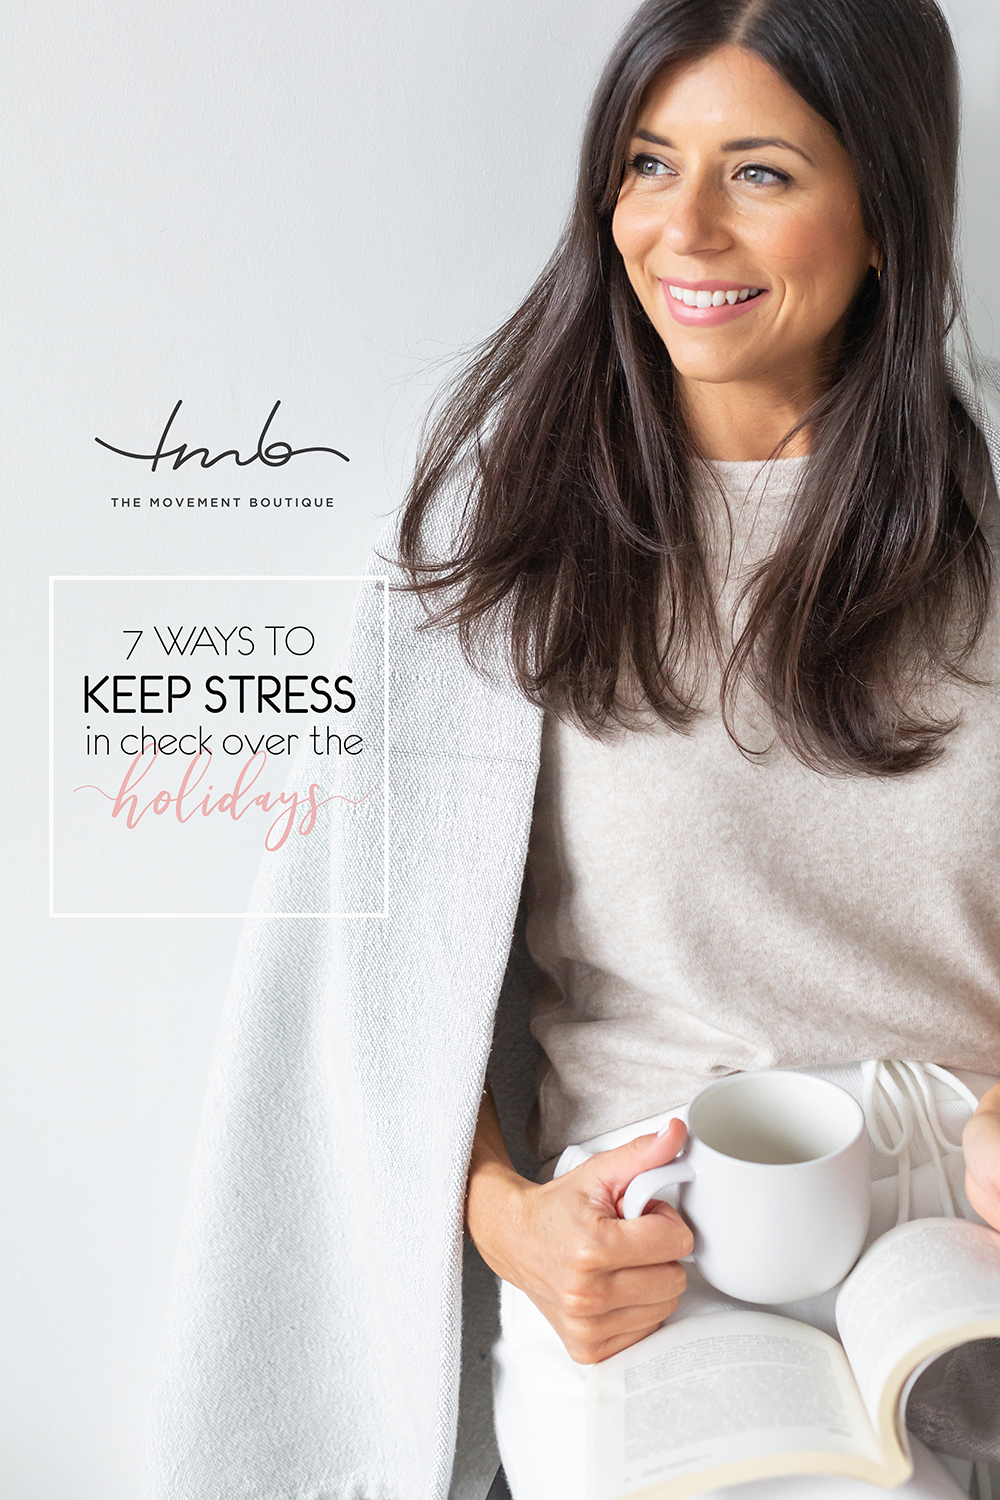 7 Ways To Keep Stress In Check Over The Holidays!